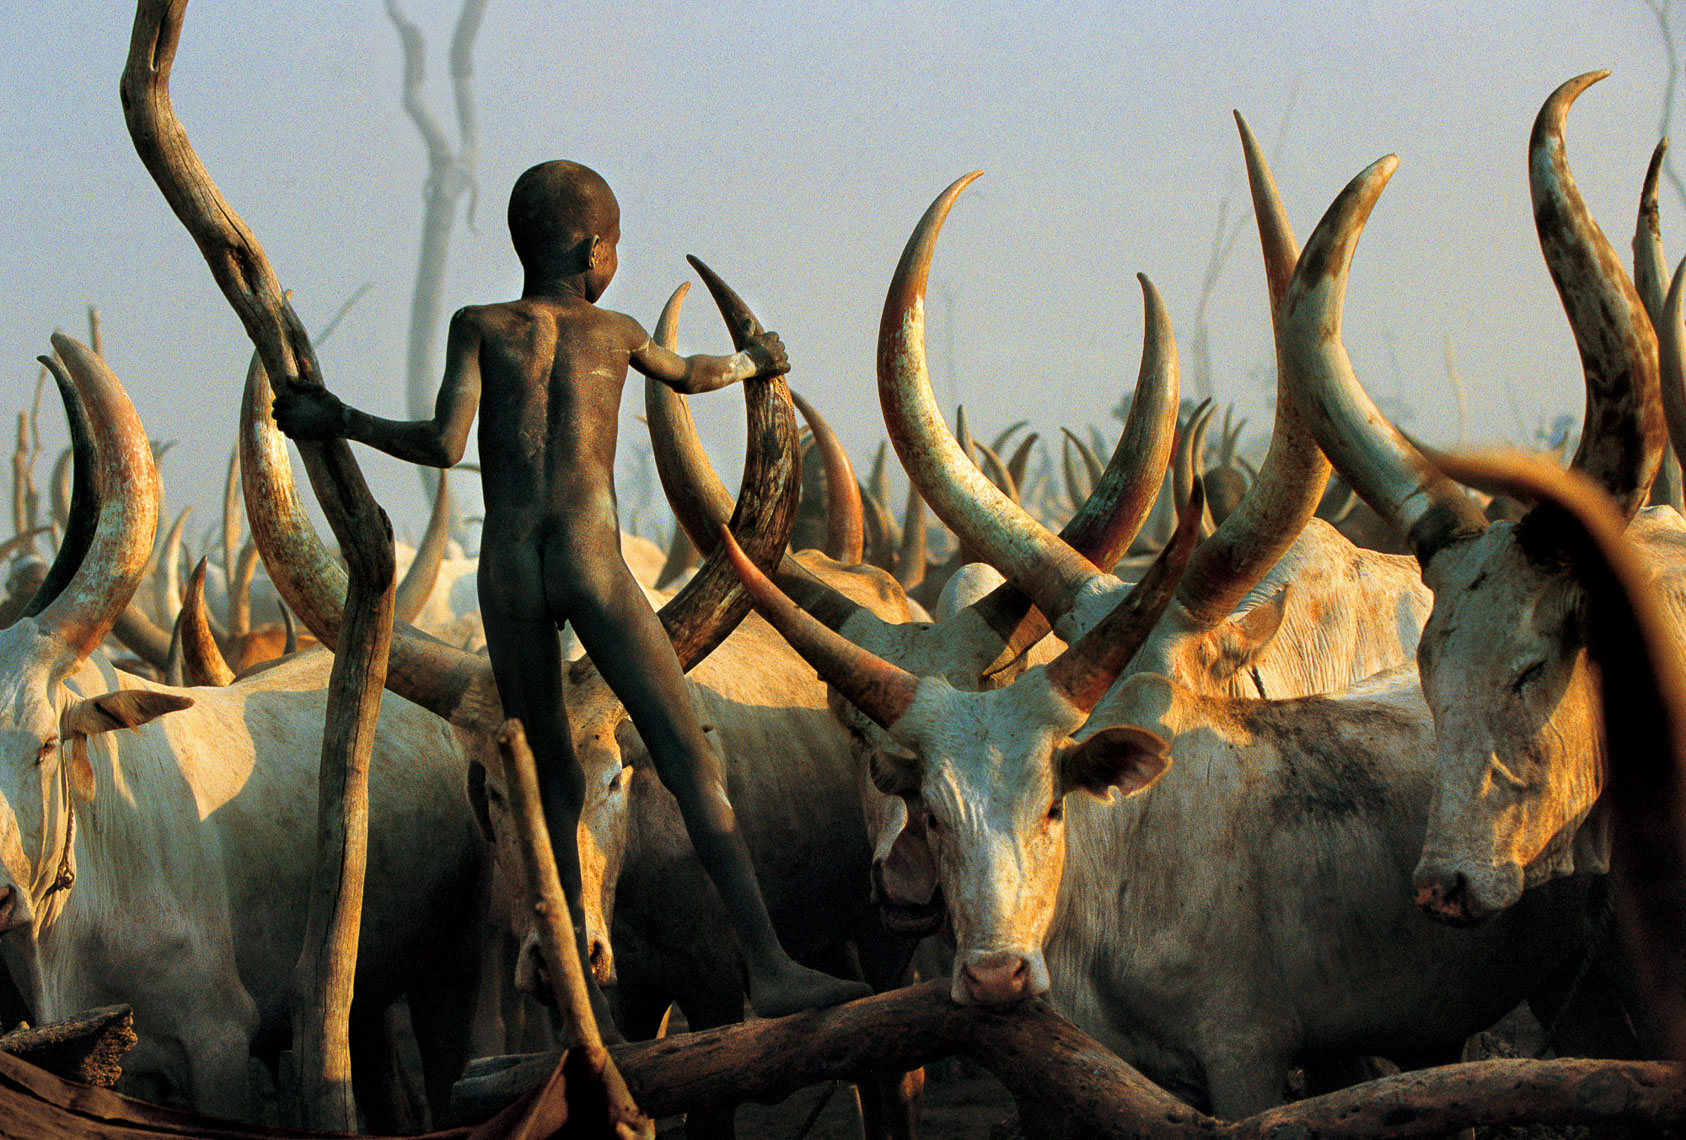 Dinka Child Climbing Among the Horns, South Sudan